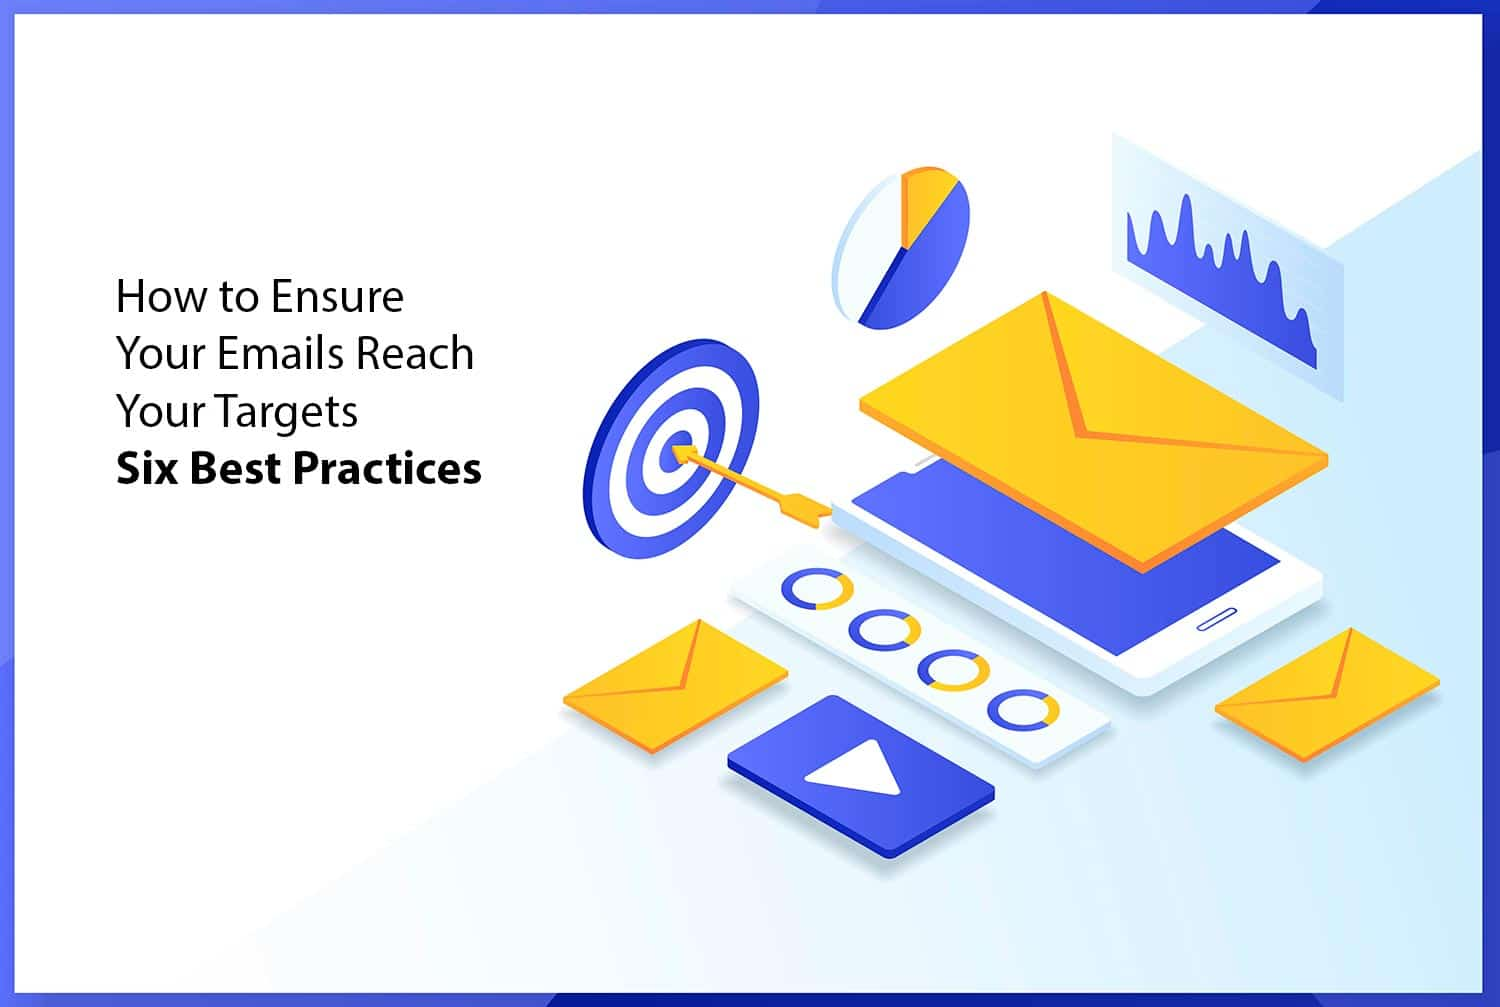 Emails reach your targets